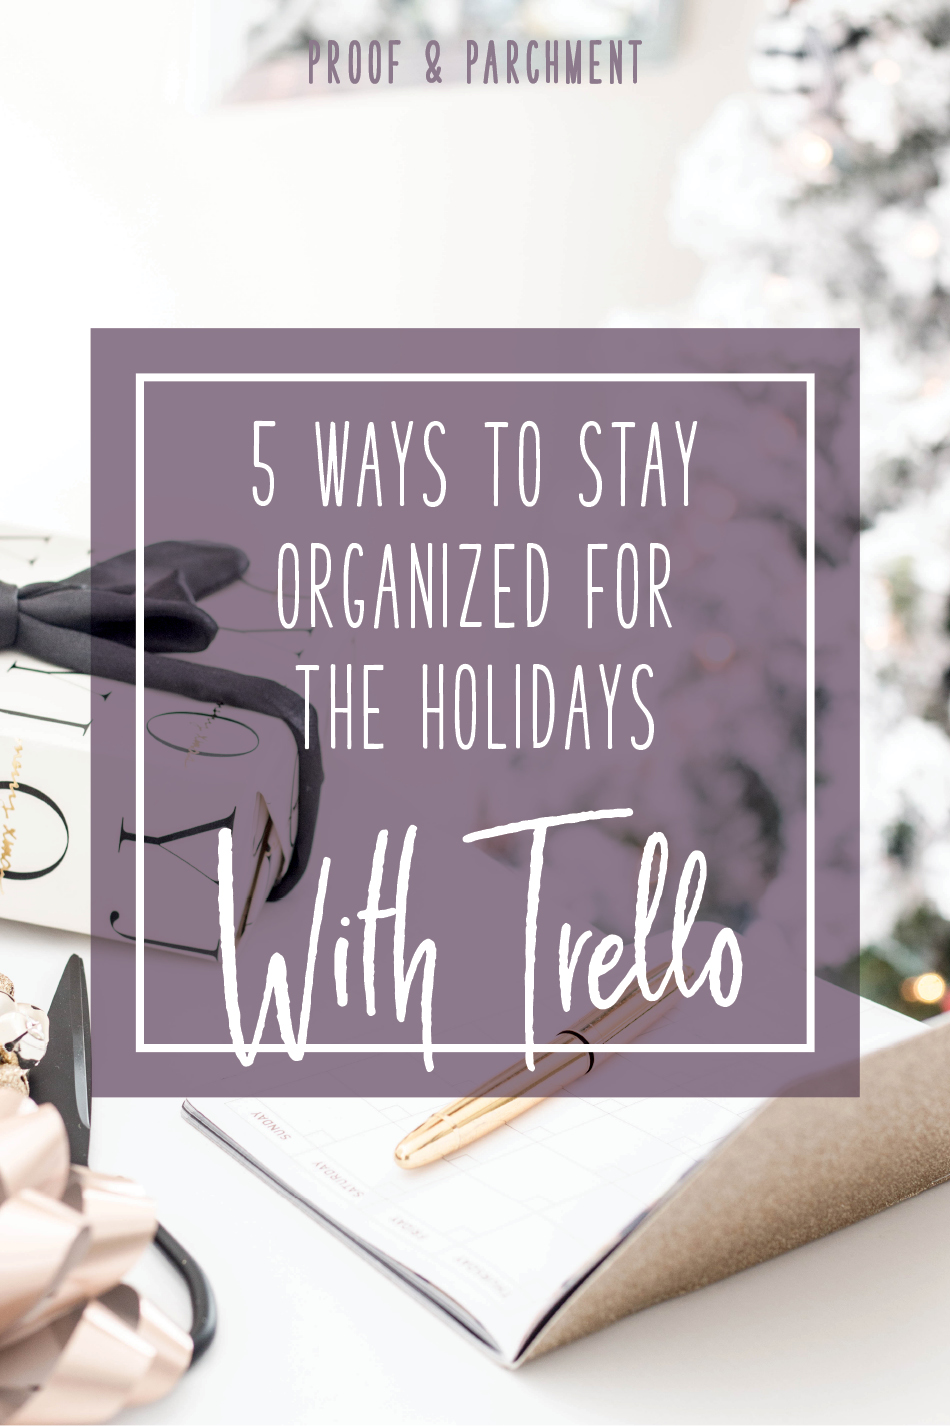 5 Ways to Stay Organized for the Holidays with Trello